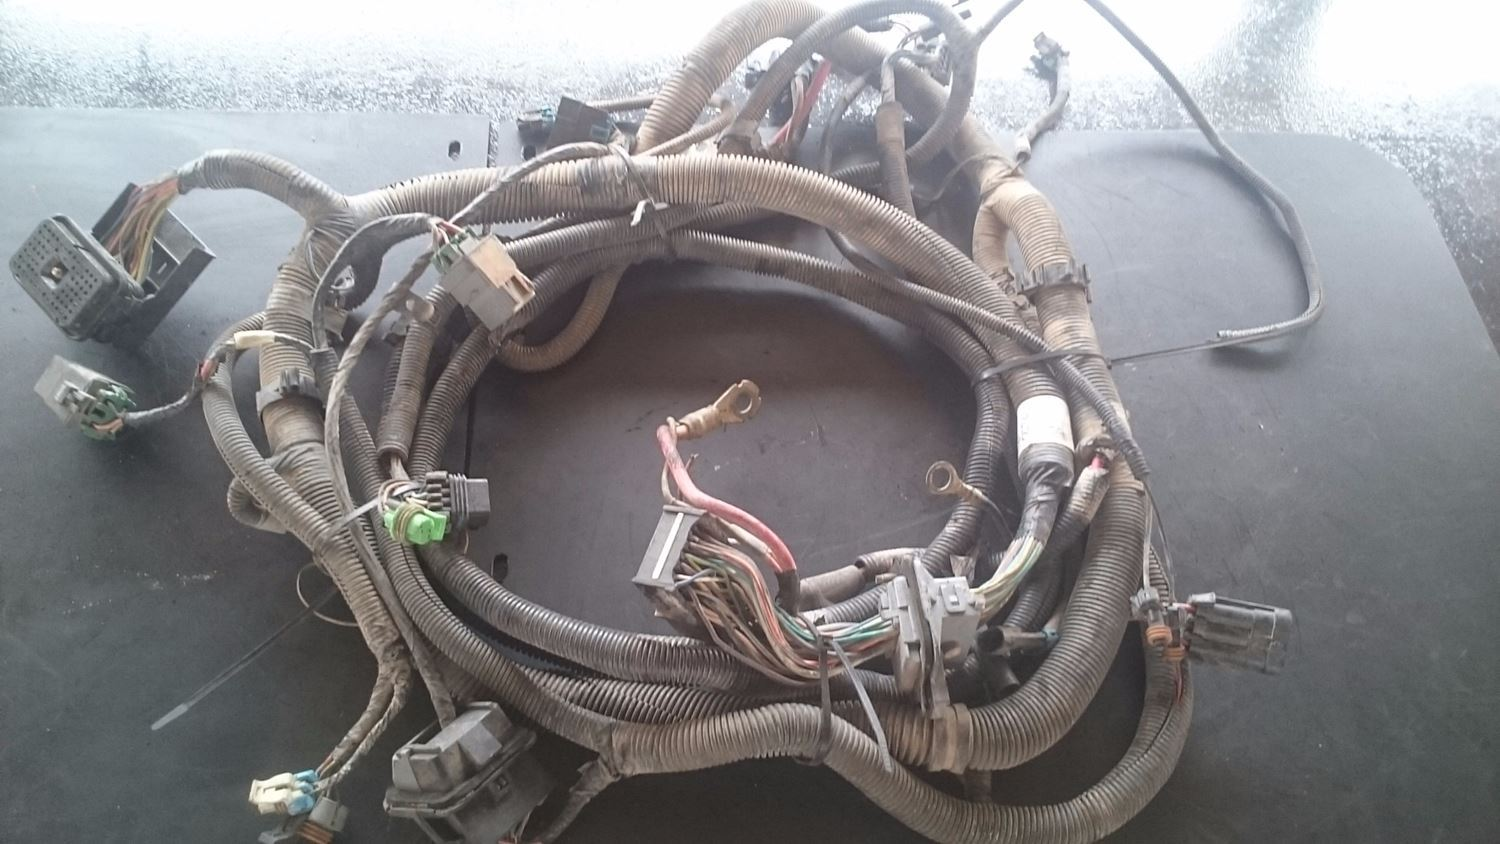 wiring harnesses new and used parts american truck chrome rh americantruckchrome com caterpillar 3126 wiring harness caterpillar wiring harness repair kit